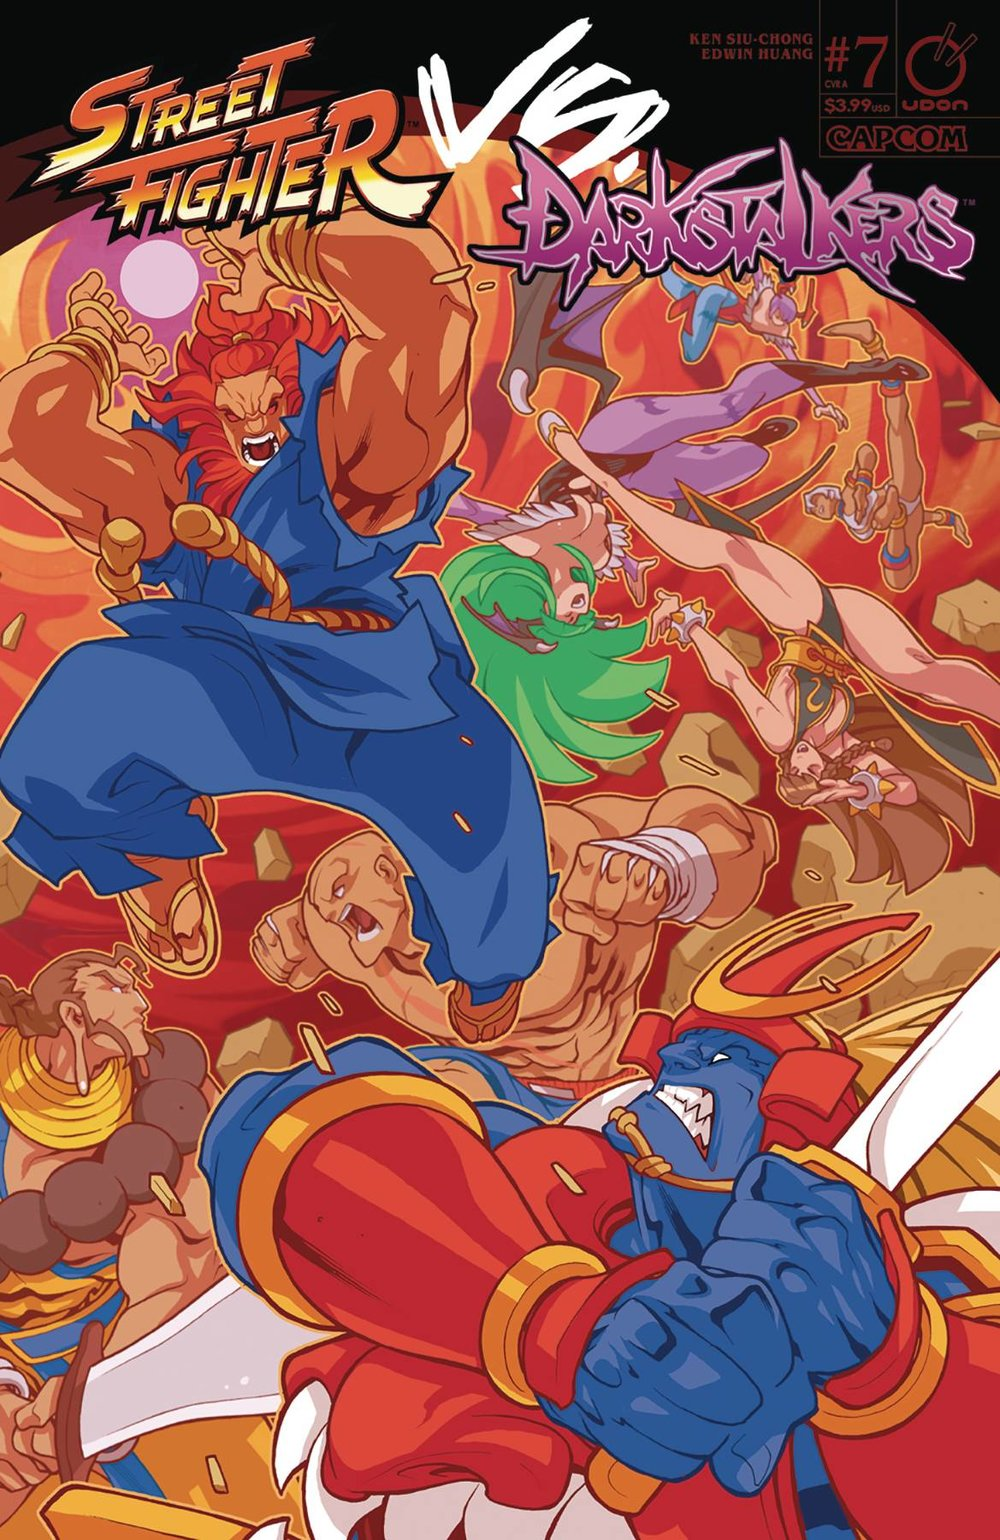 STREET FIGHTER VS DARKSTALKERS 7 of 8 CVR A HUANG.jpg